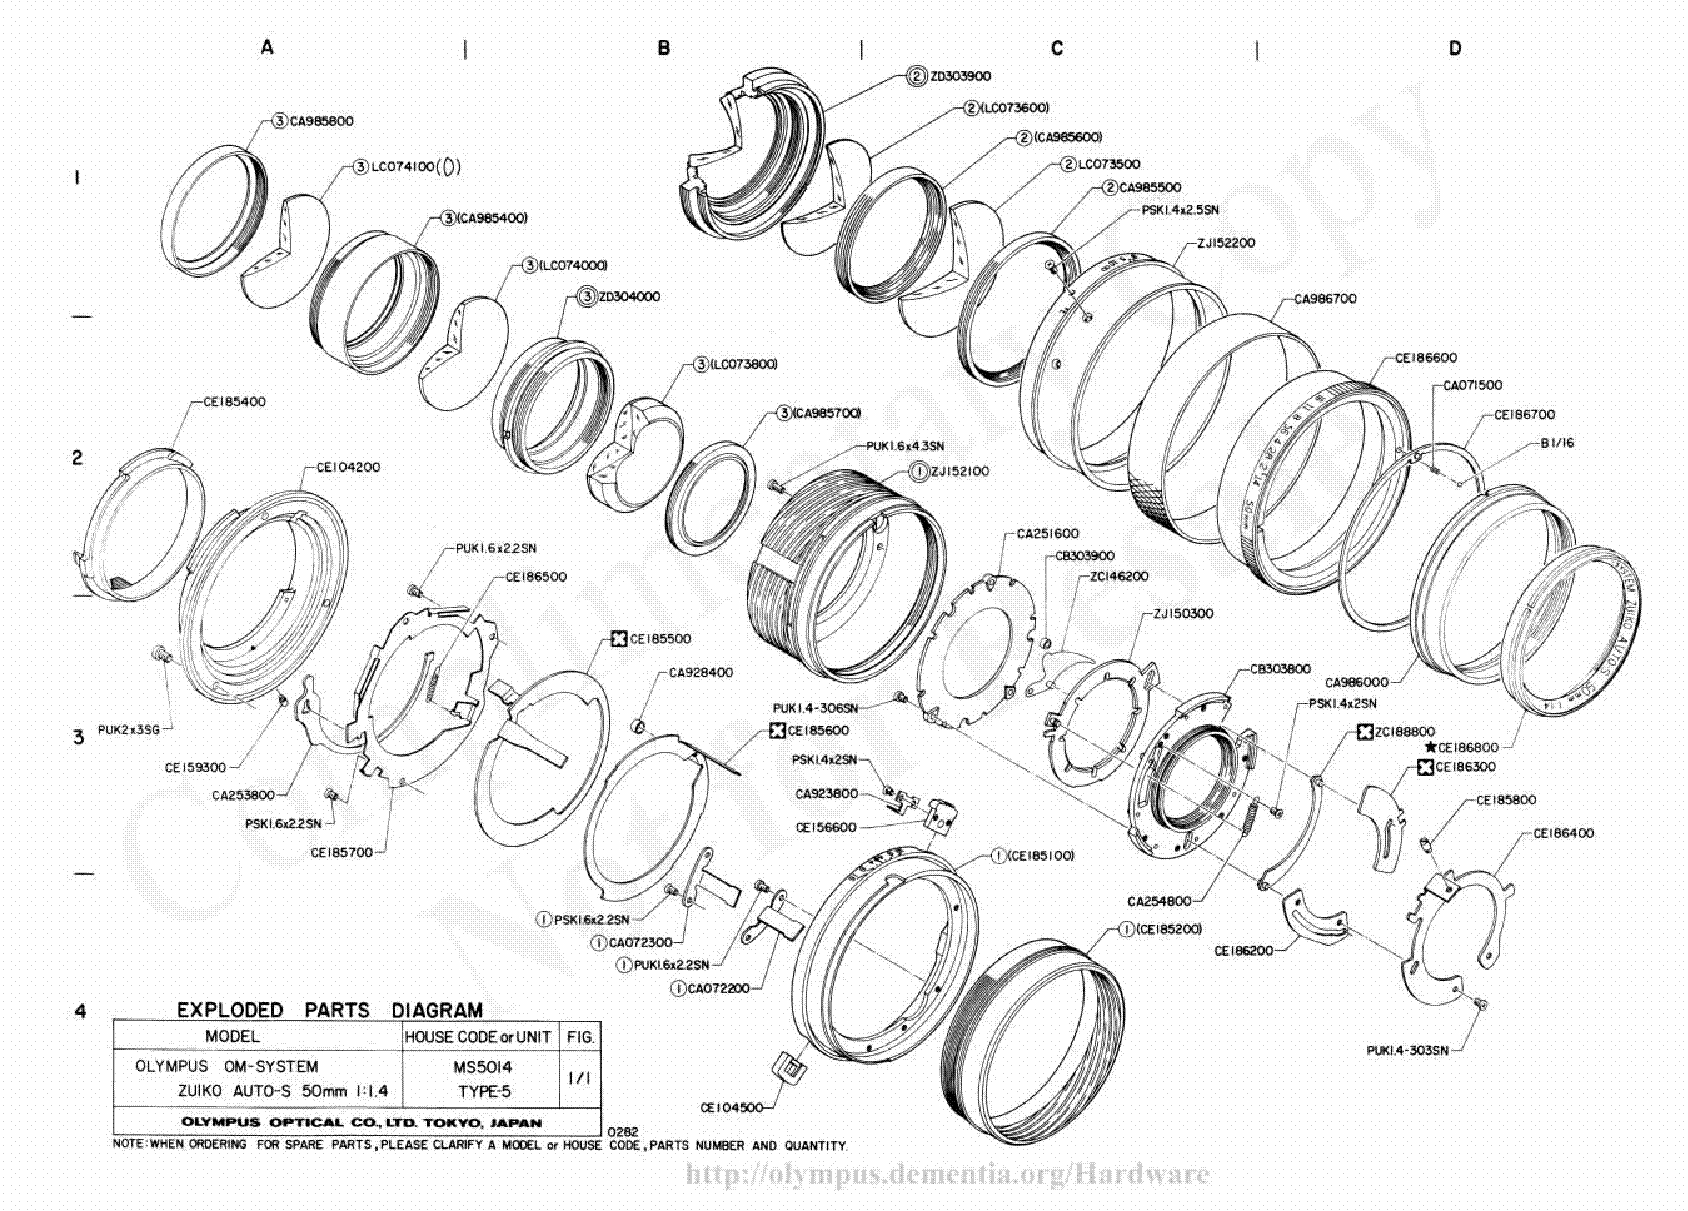 Camera Lens Parts Diagram 25 Wiring Images Where To Get For A Nikon D5000 Slr Olympus 50mm F14 Exploded Diagrampdf 1 35 105mm F3 5 4 Service